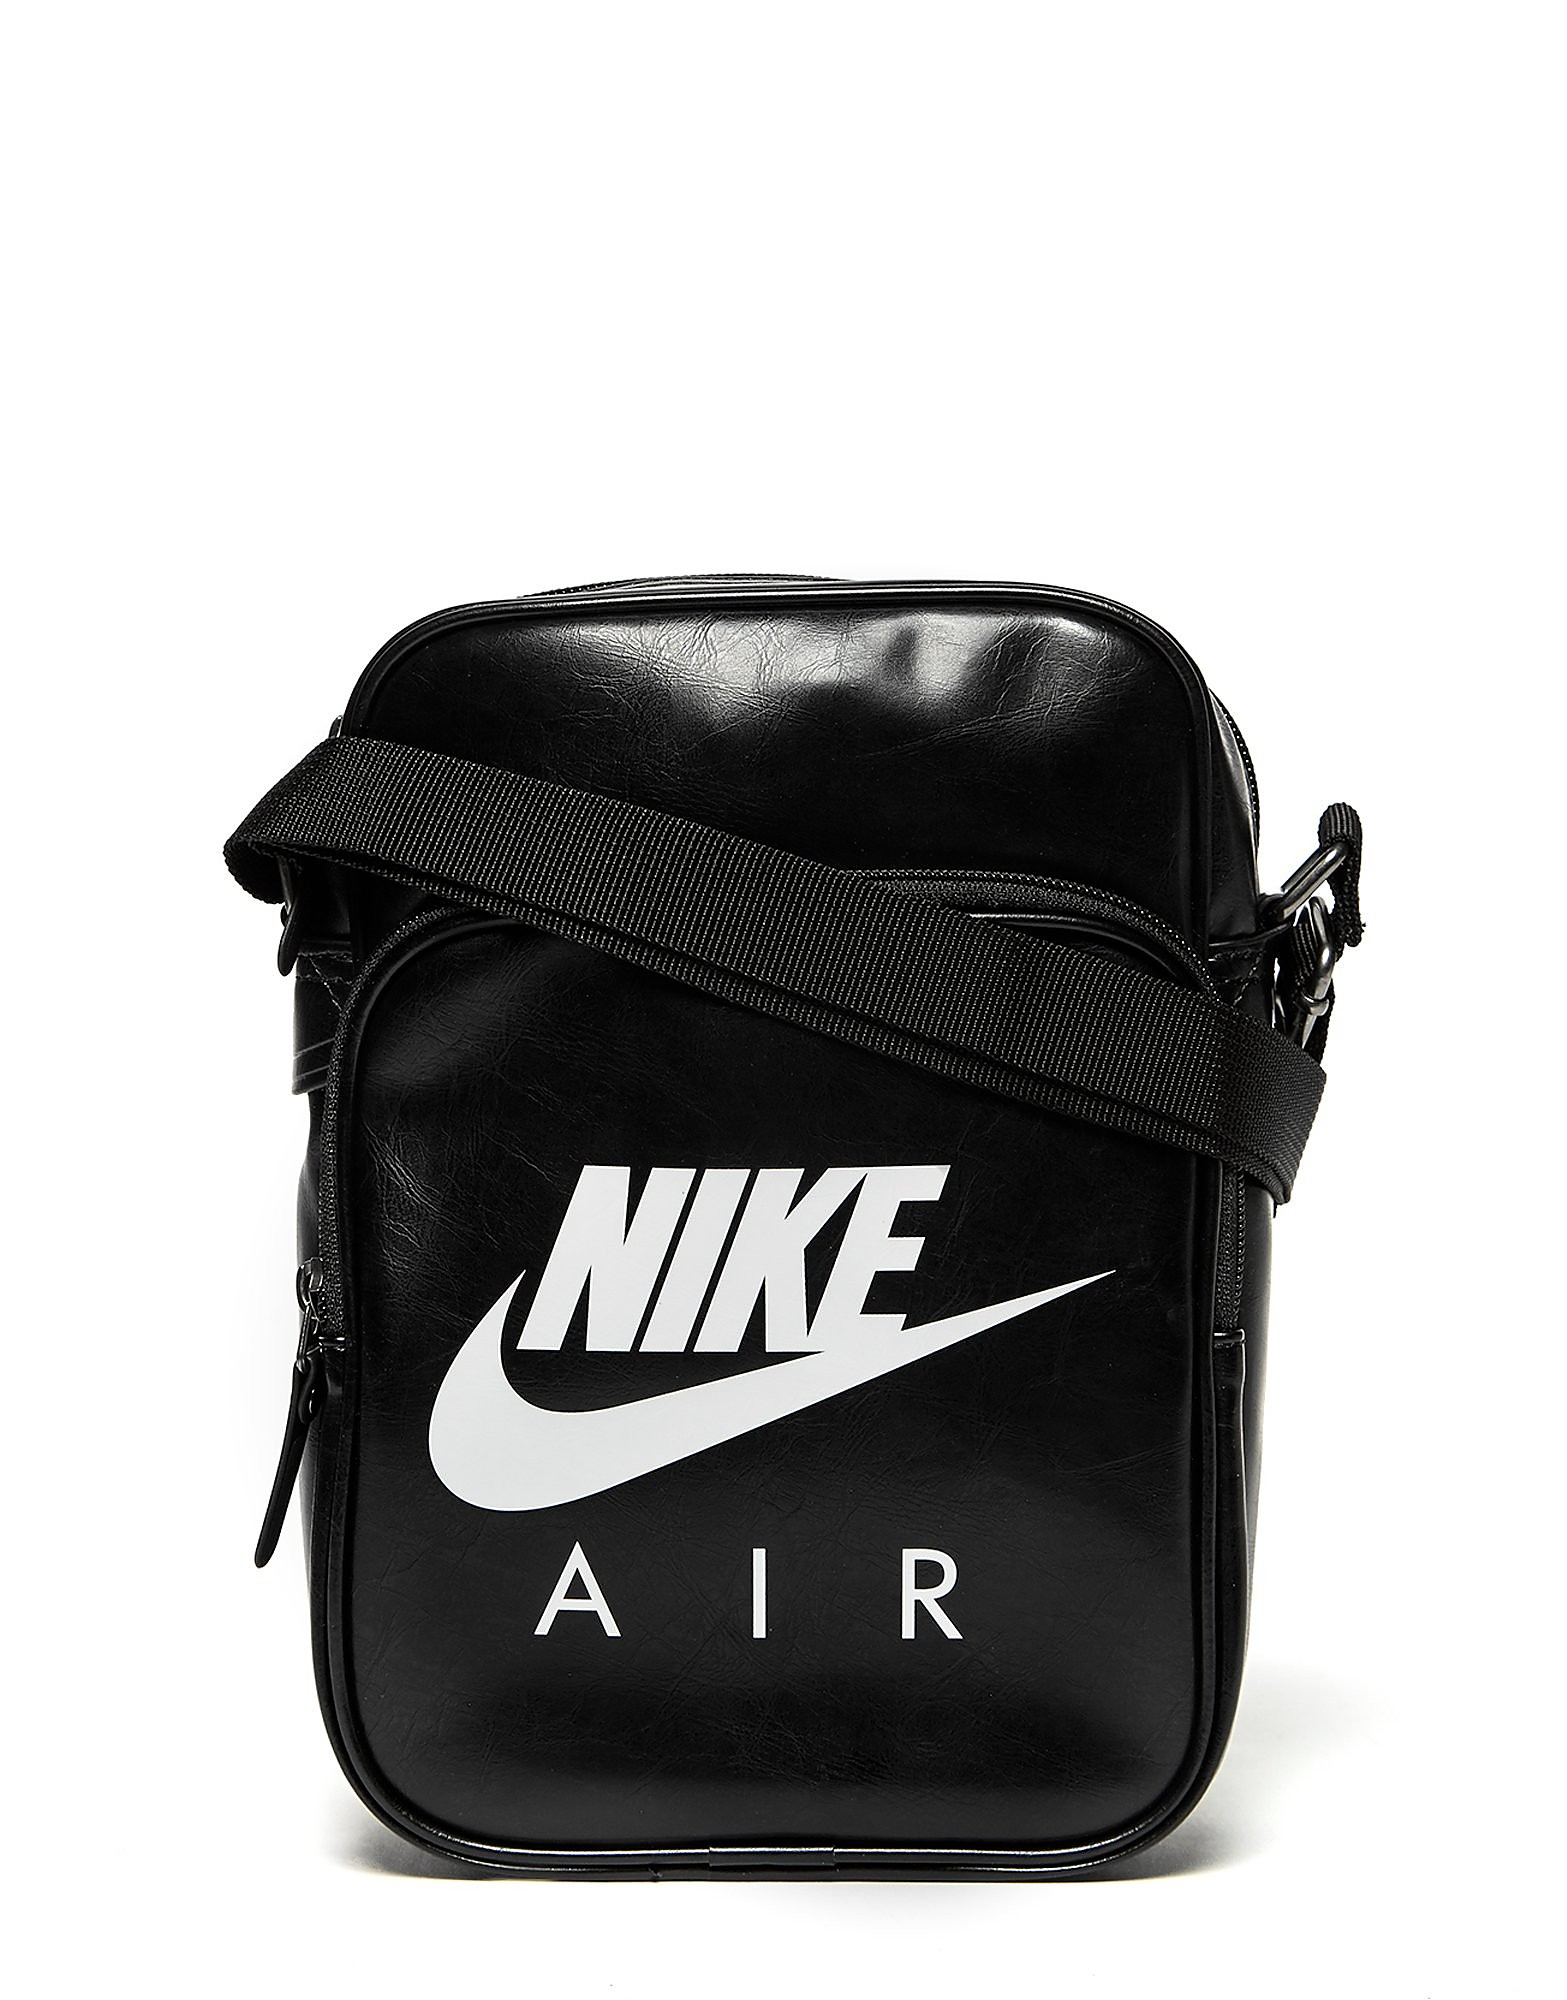 76cb9e50d18 Nike Air Small Items Bag - Black - Mens - Sports King Store